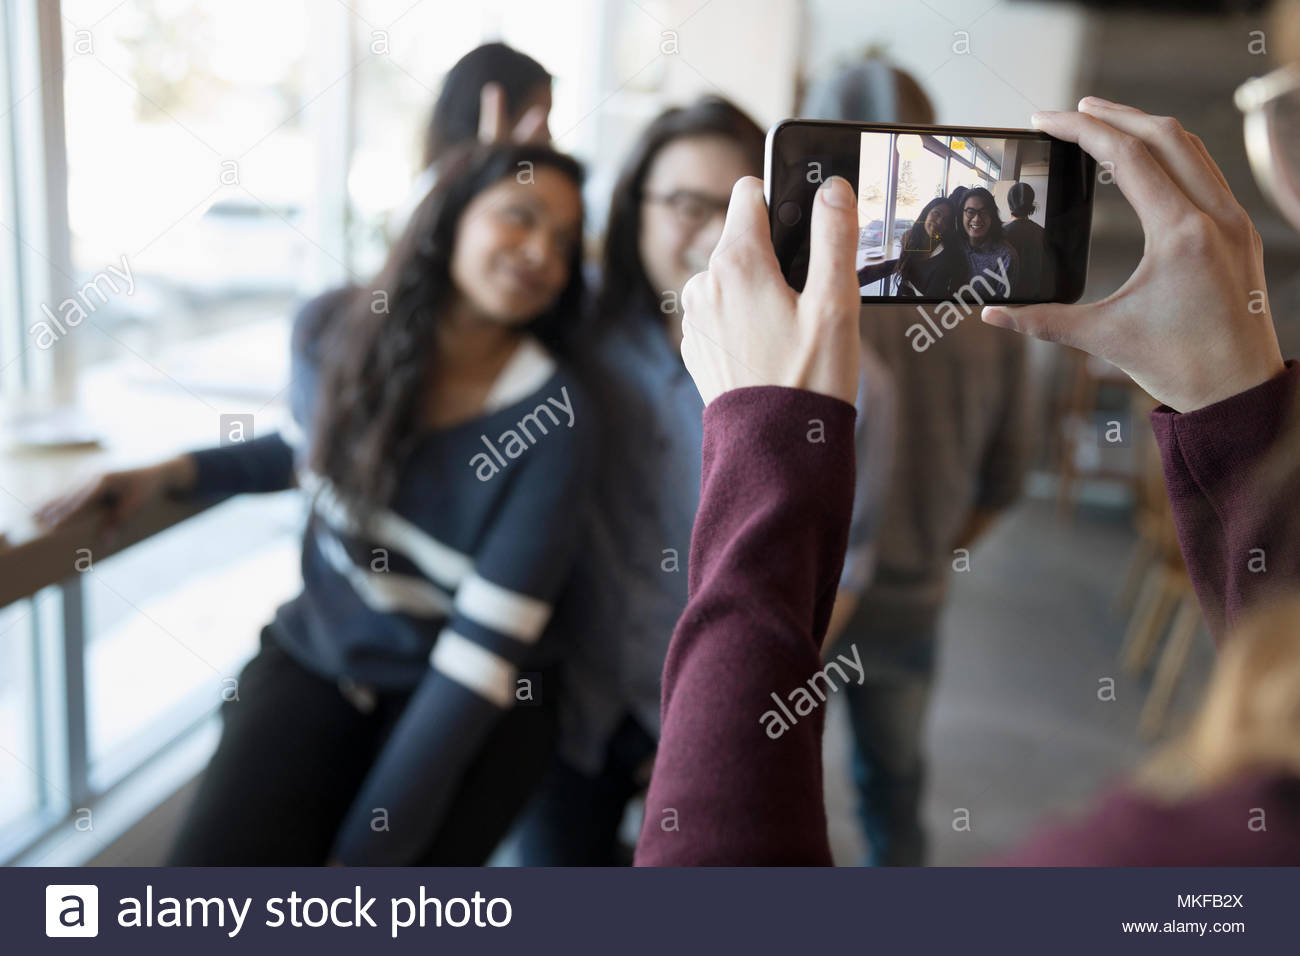 Young woman with camera phone photographing friends - Stock Image